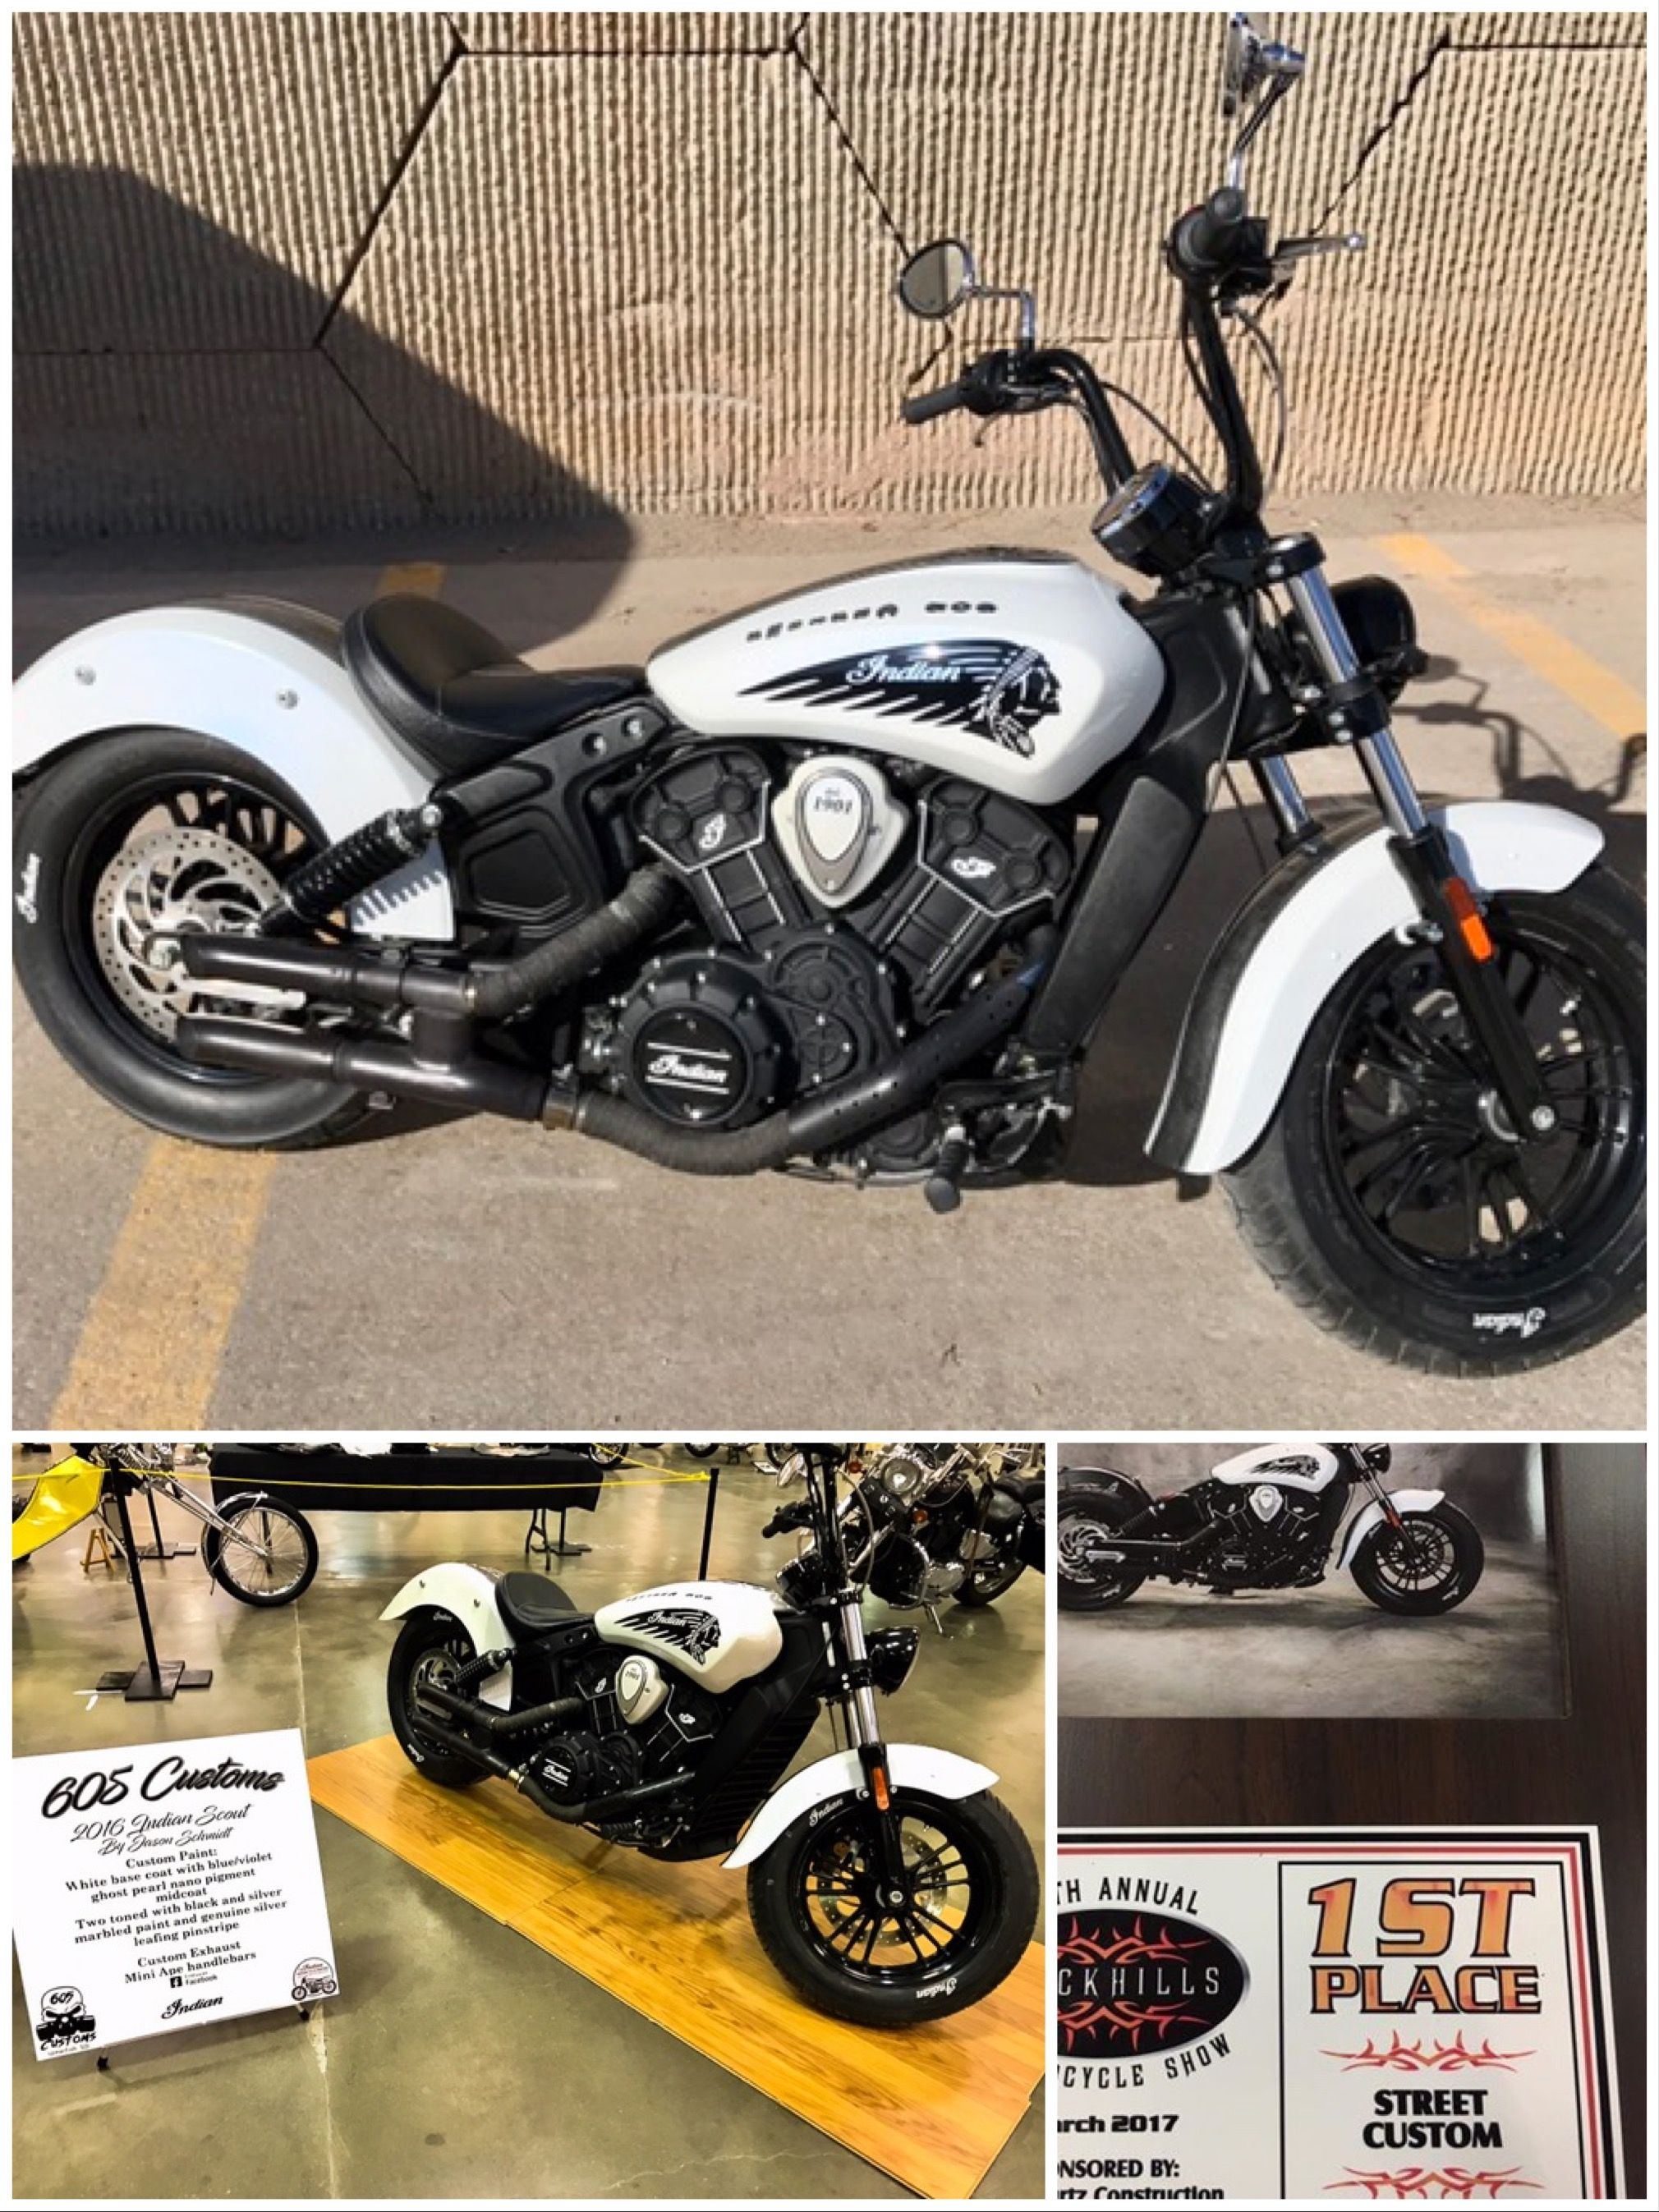 Indian Scout Indian Scout Bike Indian Motorcycle Indian Scout [ 2694 x 2020 Pixel ]